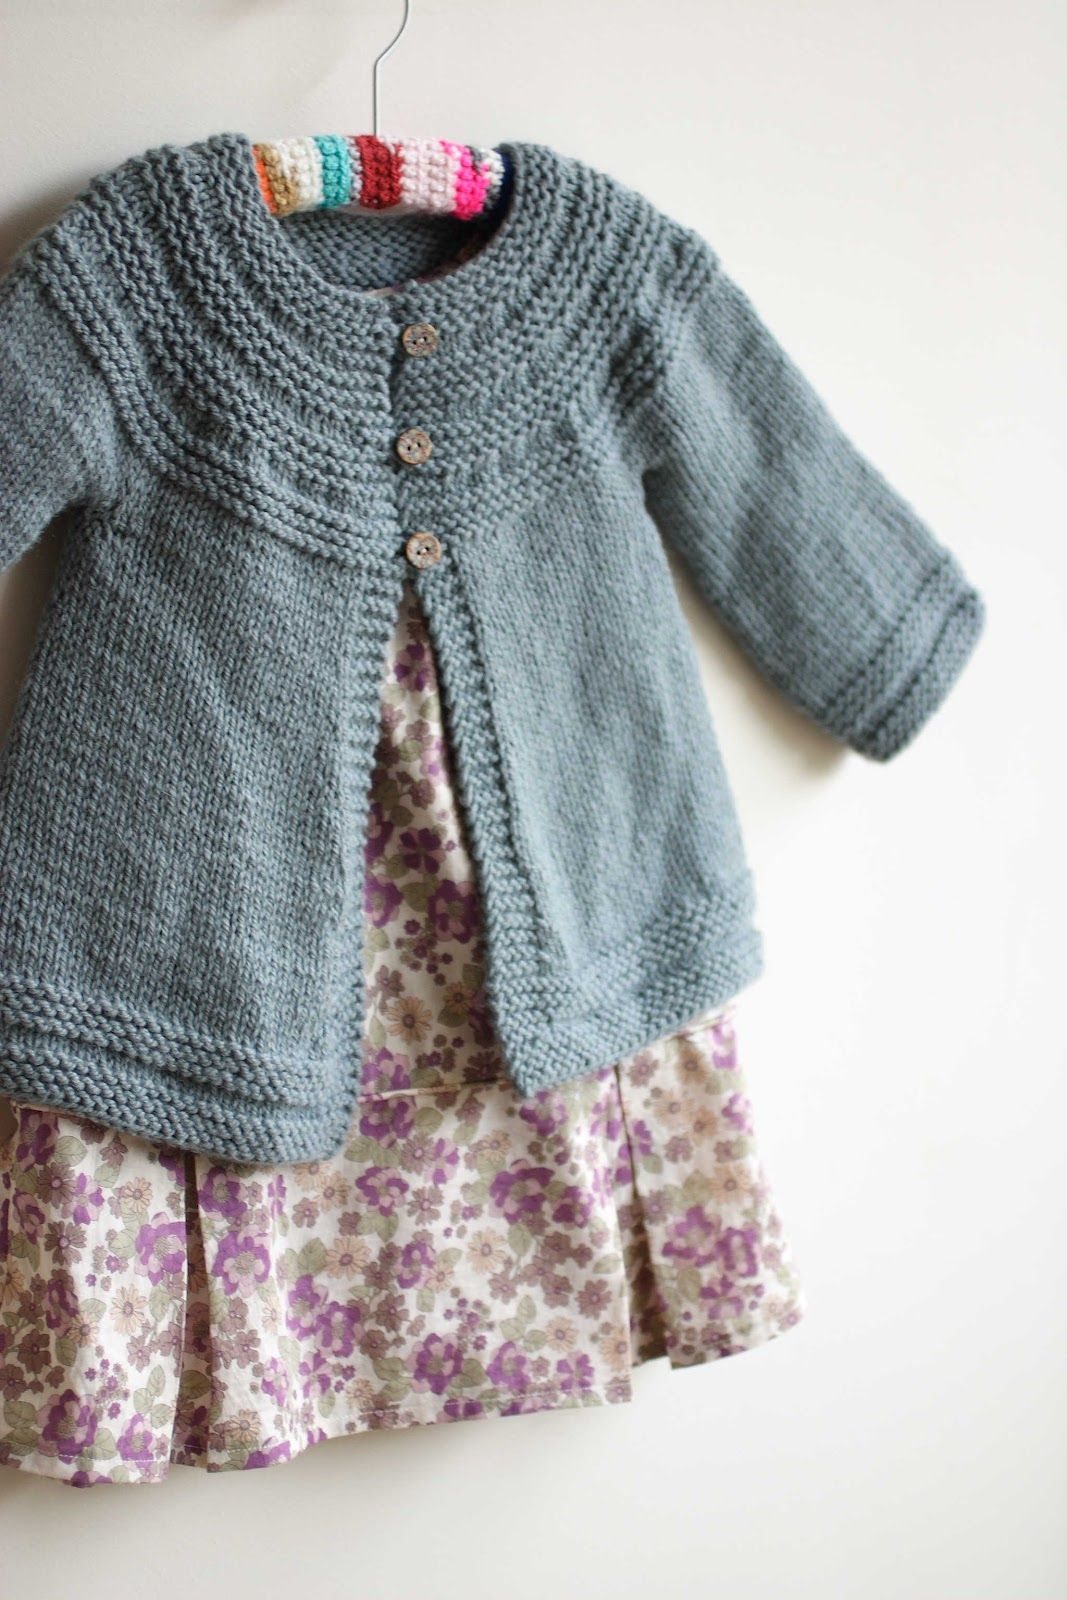 5 Cardigans for Little Girls | Pinterest | Swings, Free pattern and ...